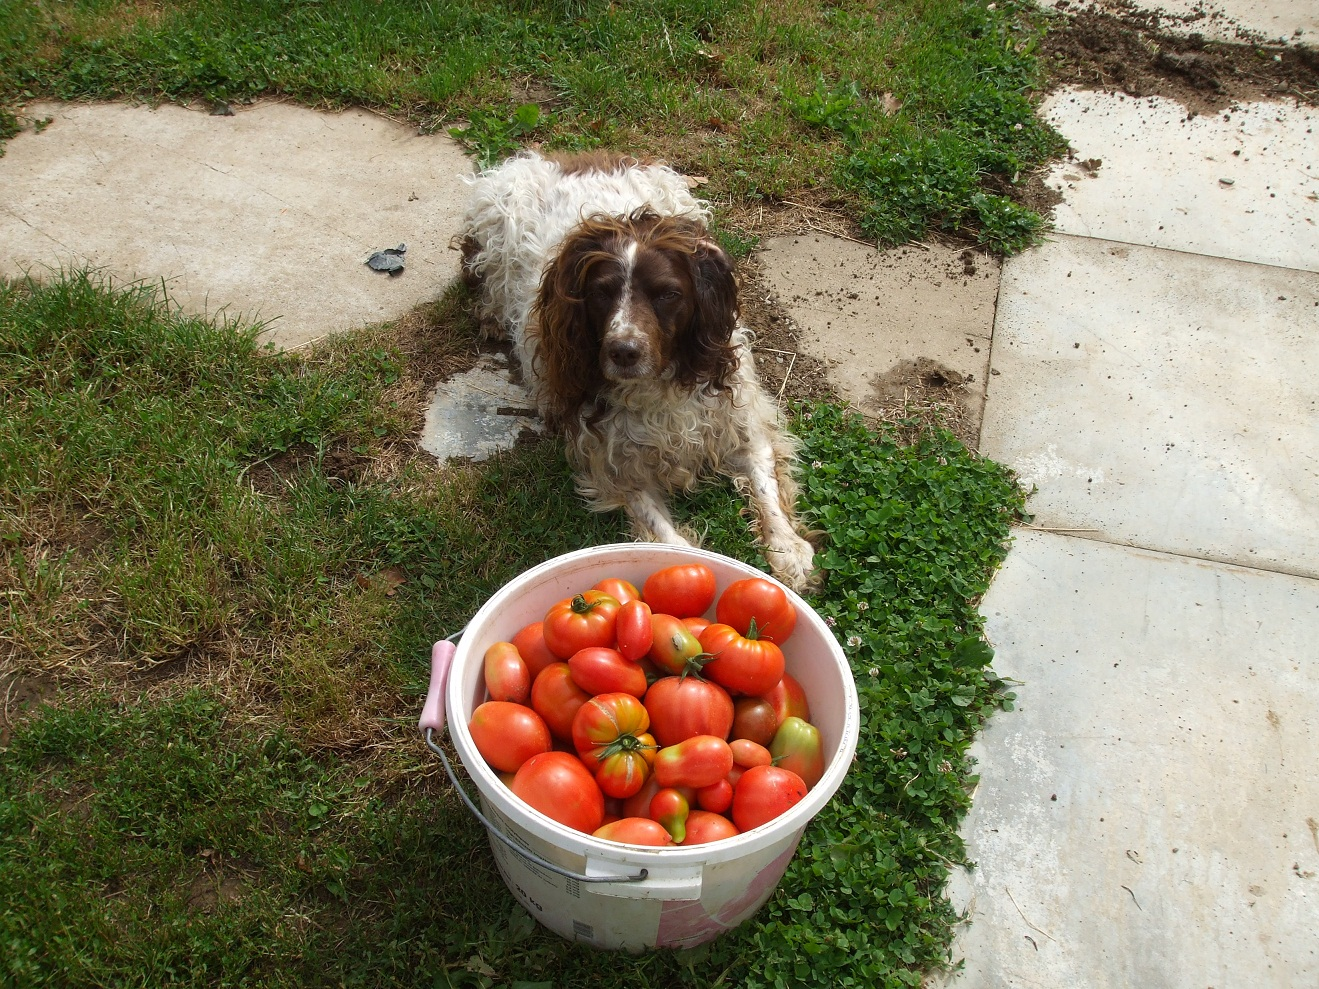 The Top Ten fruits and vegetables to add to your dog's diet